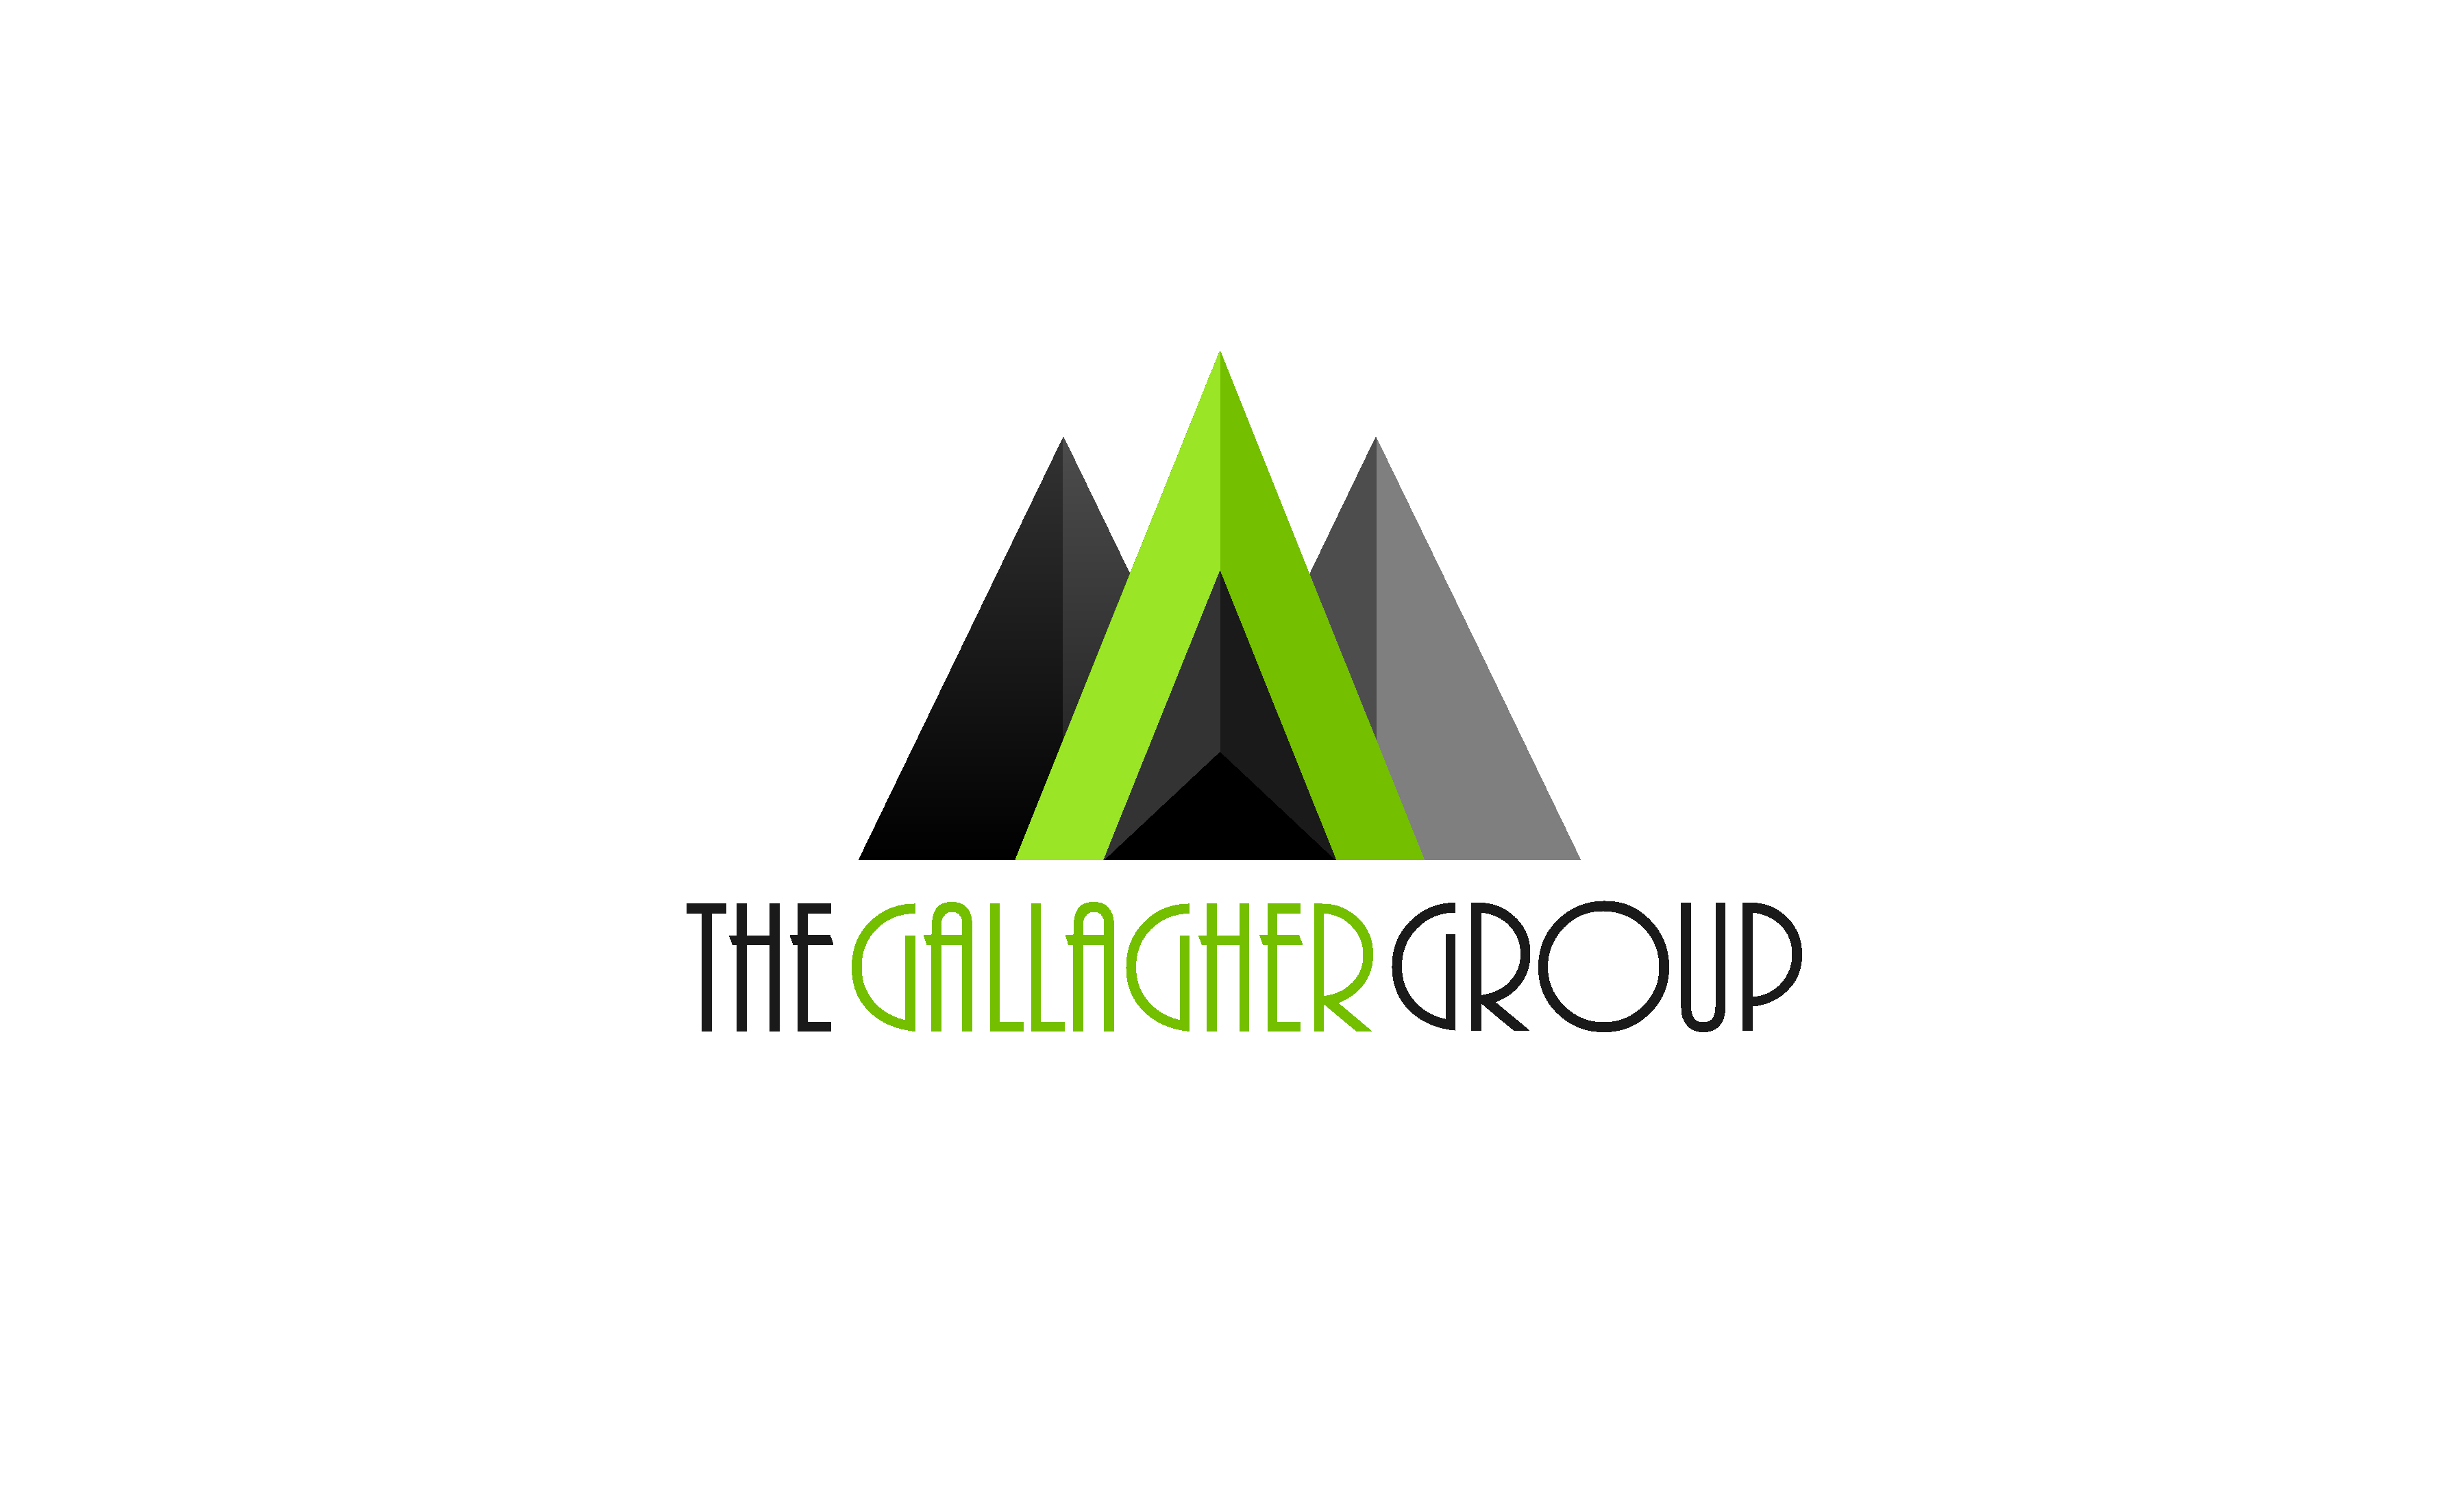 The Gallagher Group Logo by Sa-Technology